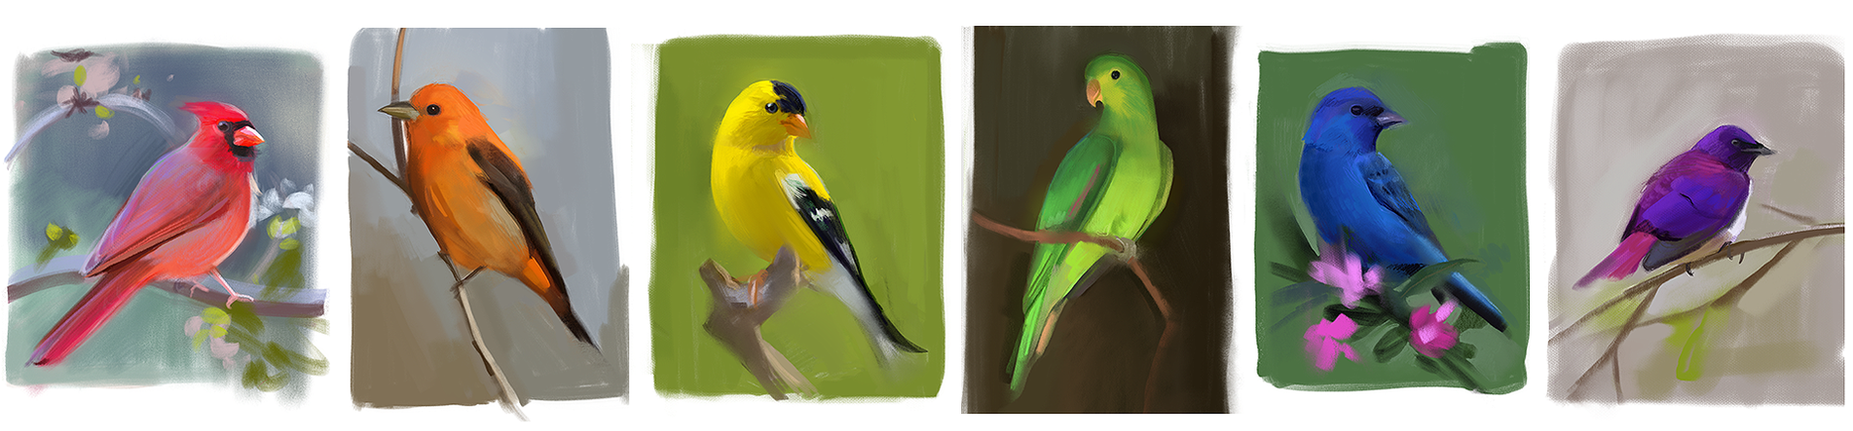 Bird Studies by gabbyd70